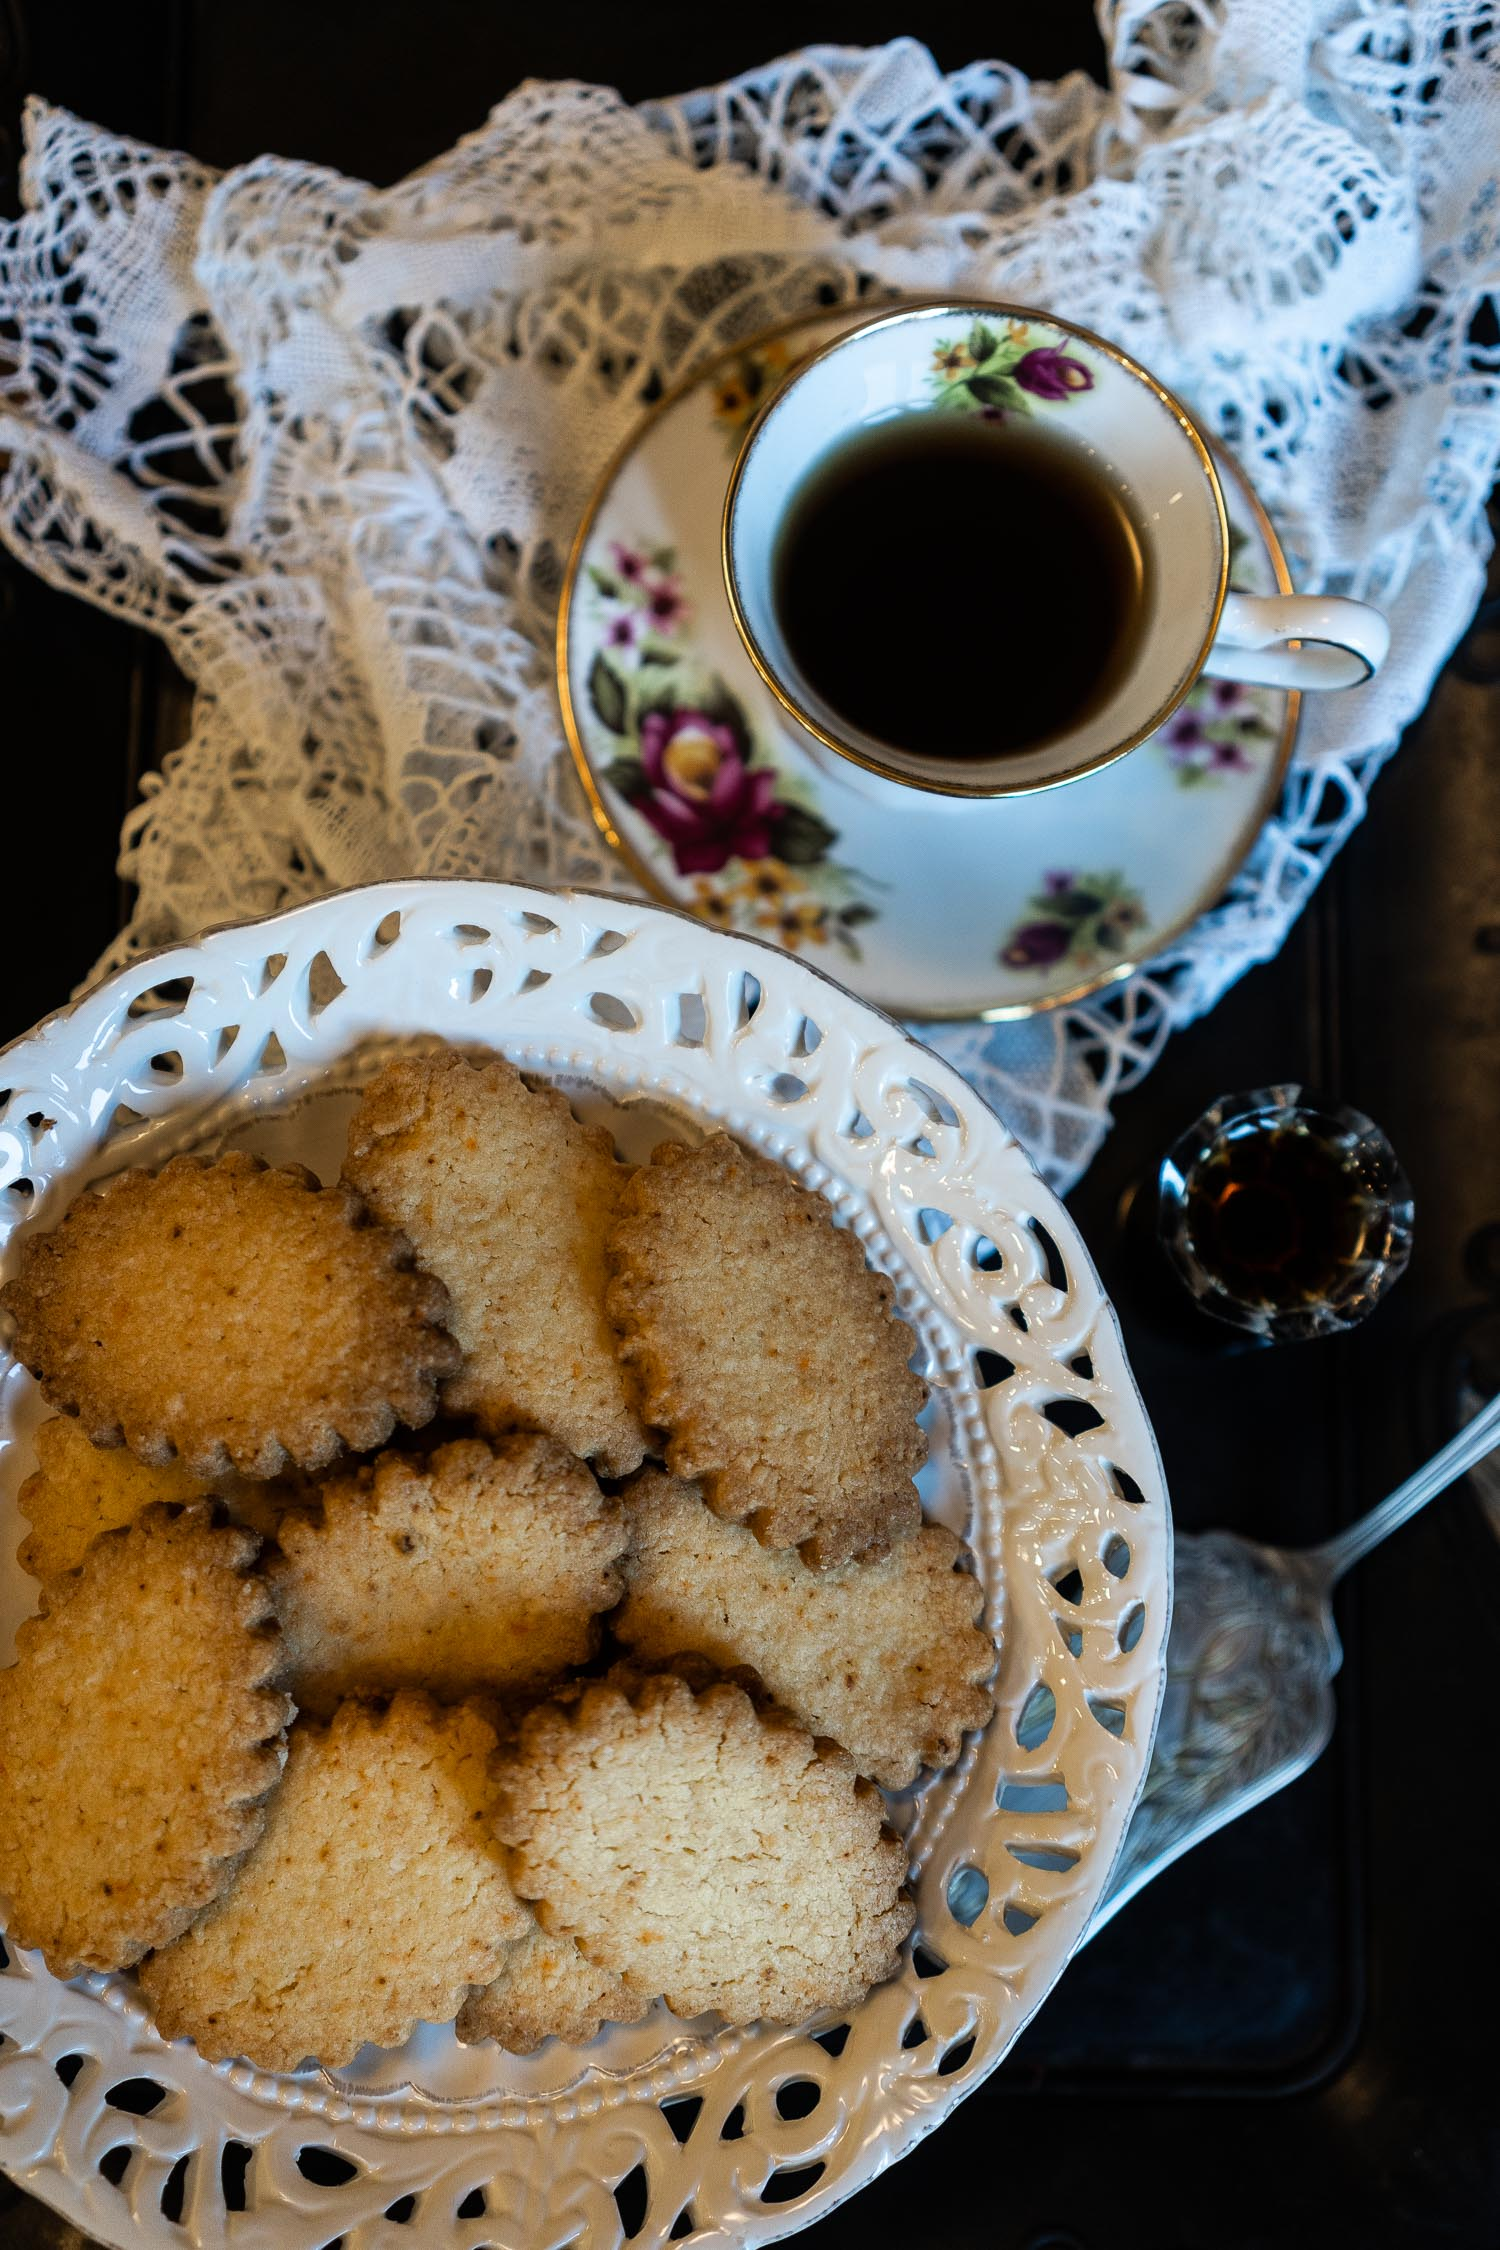 Ginger-and-Chilli-Biscuits-served-with-Masala-Chai-04046.jpg